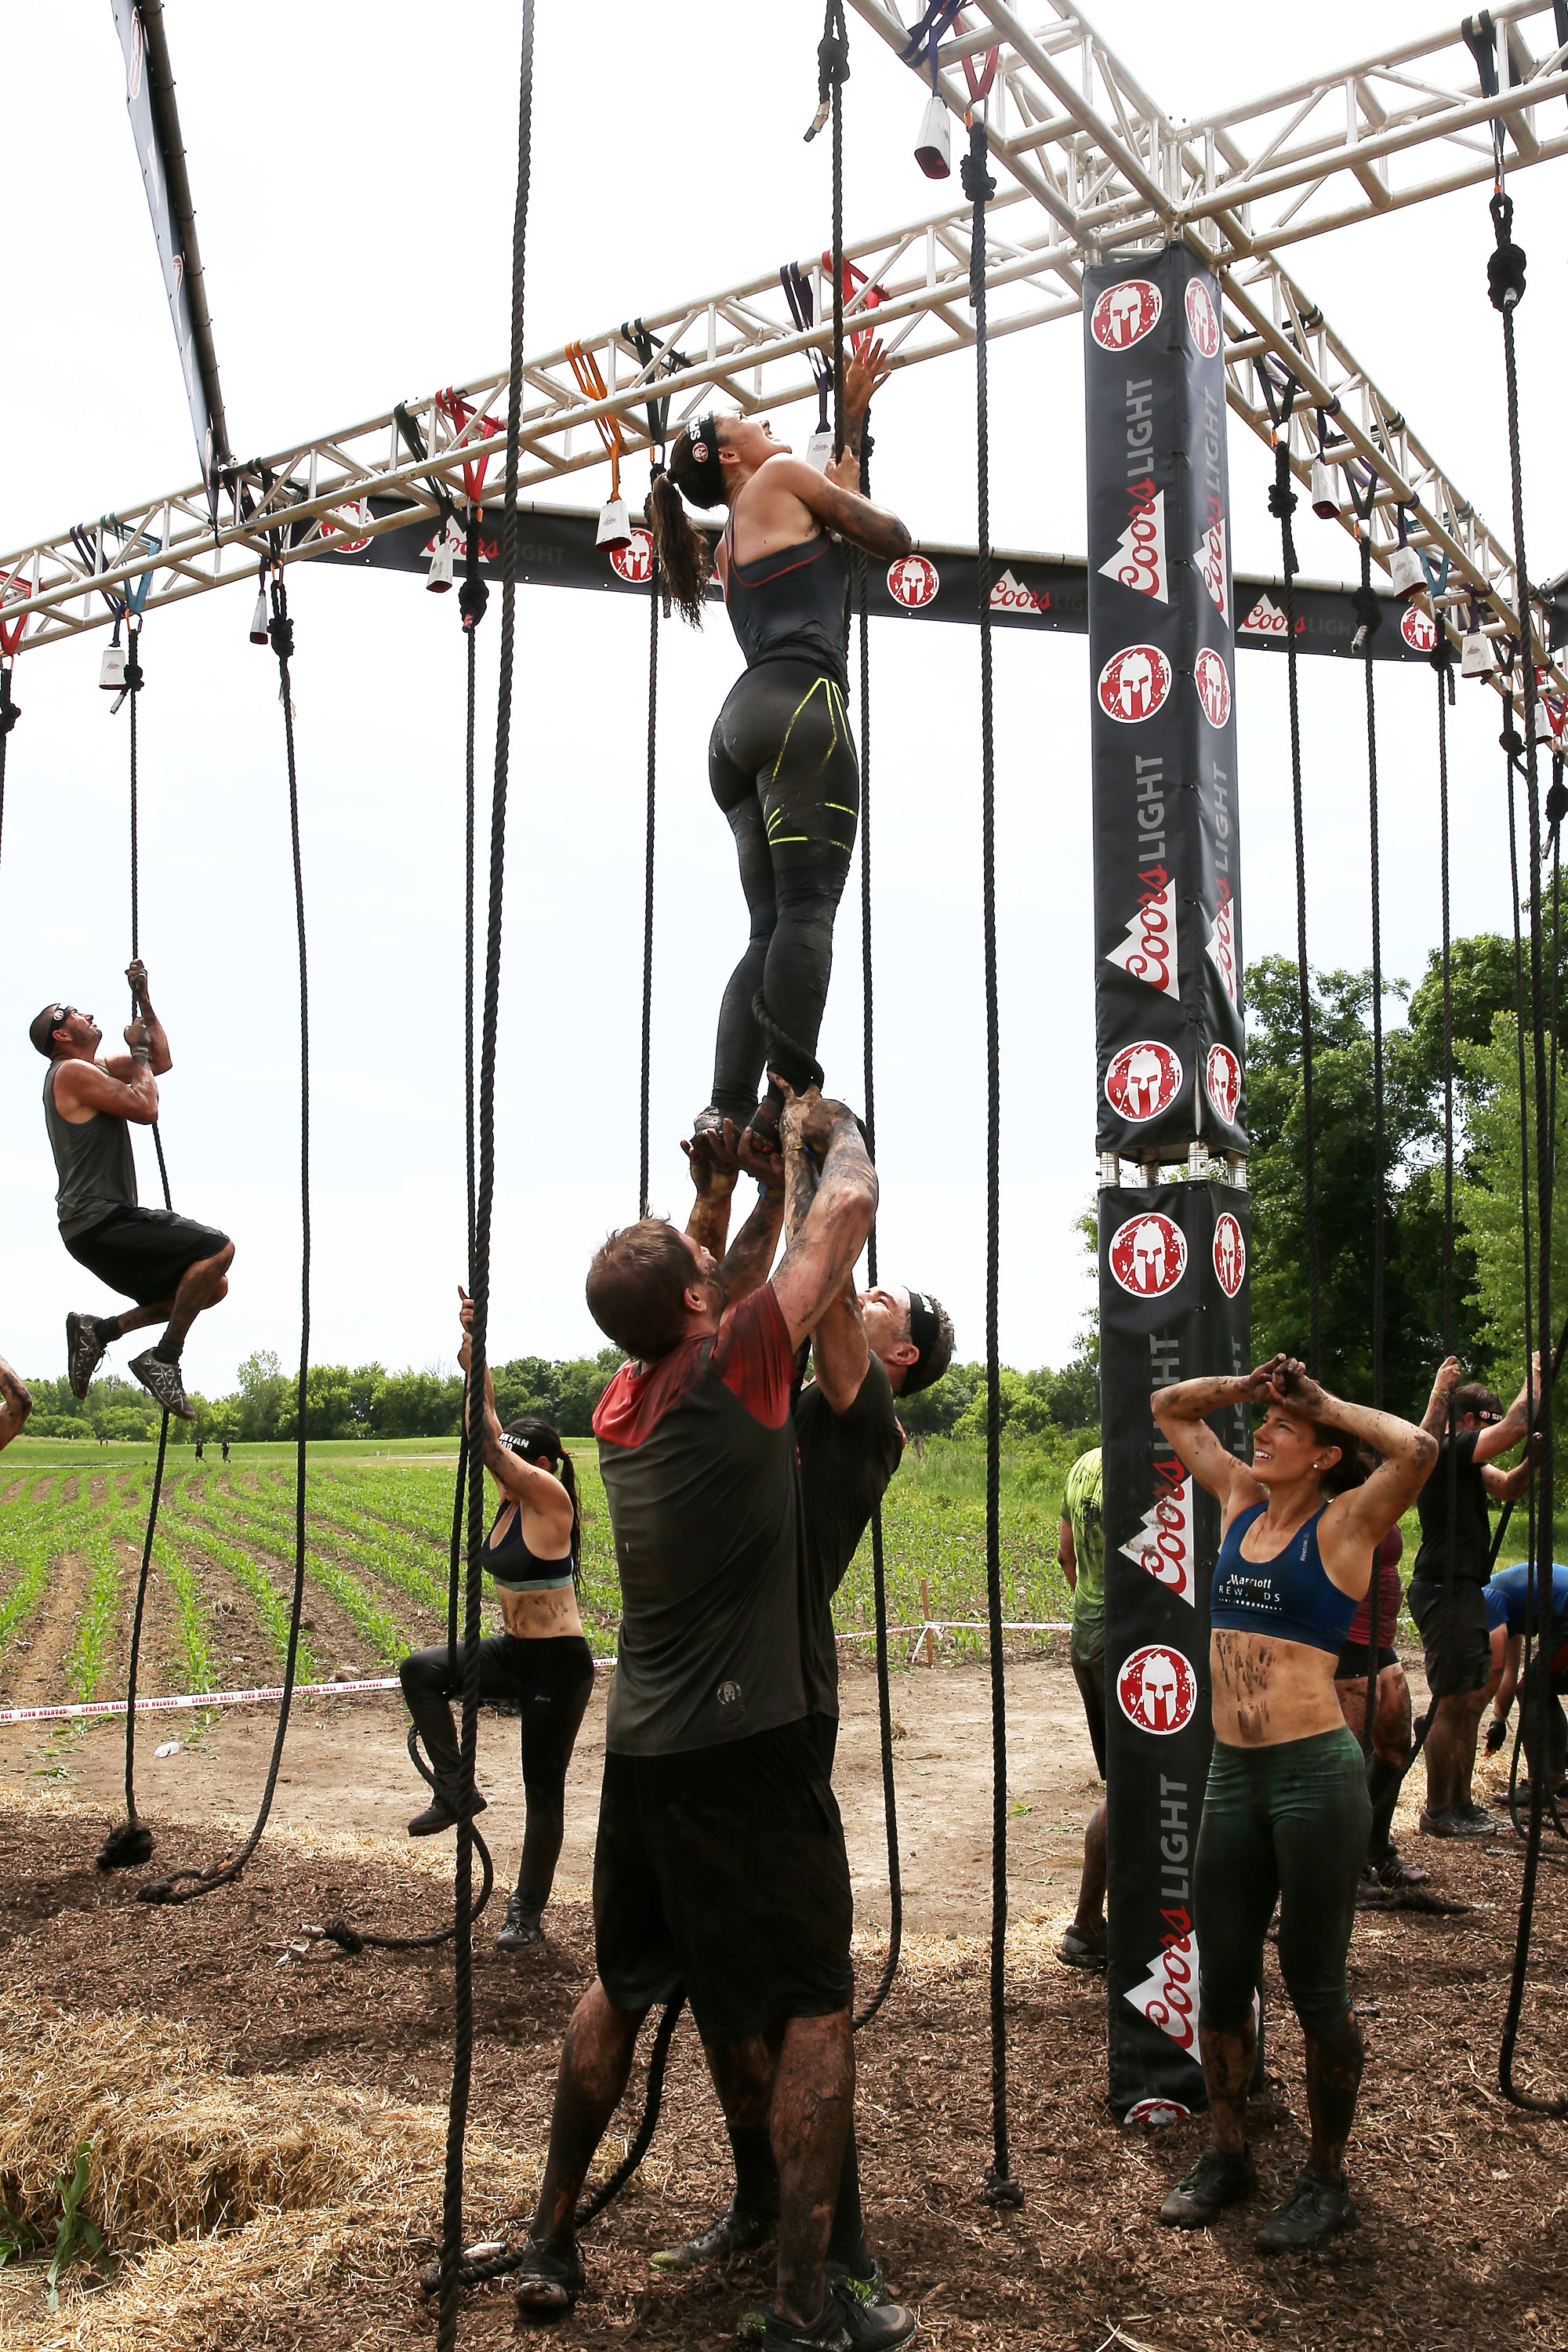 Taylor Kitsch on the Super Spartan obstacle he was most dreading: